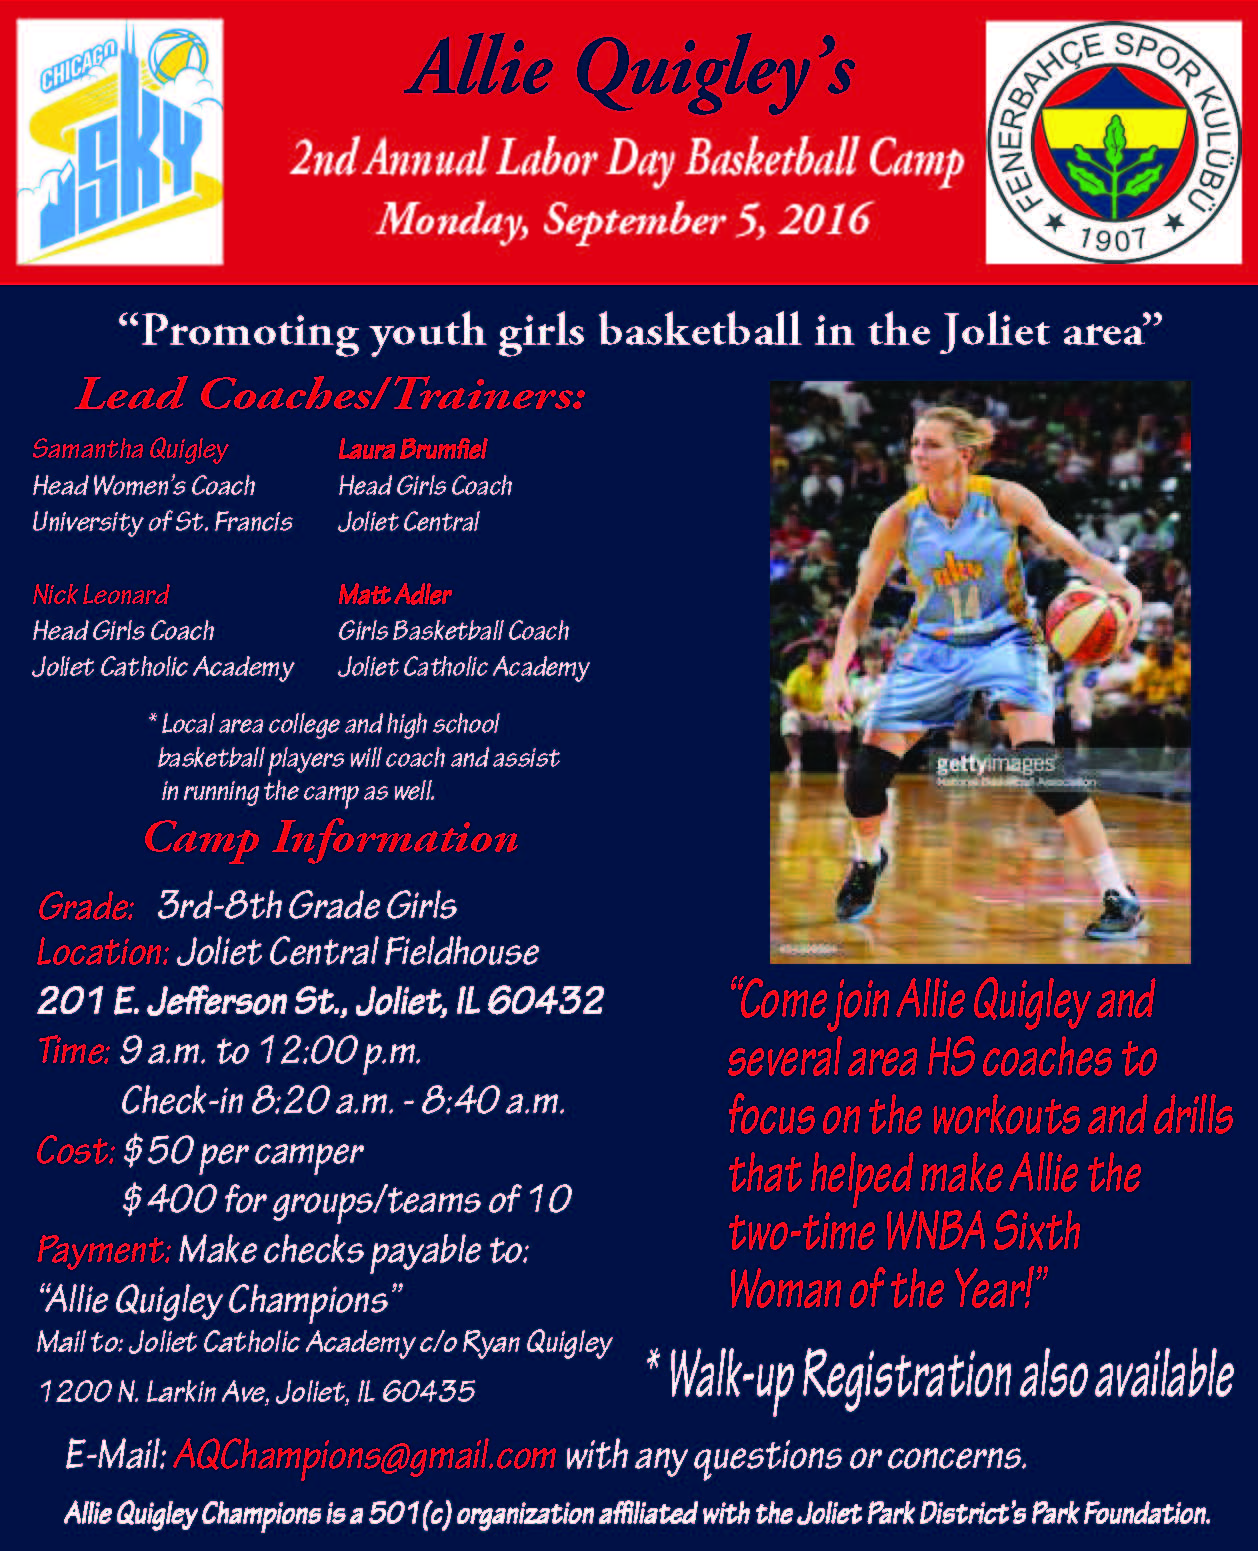 Basketball Camp Flyer For Youth